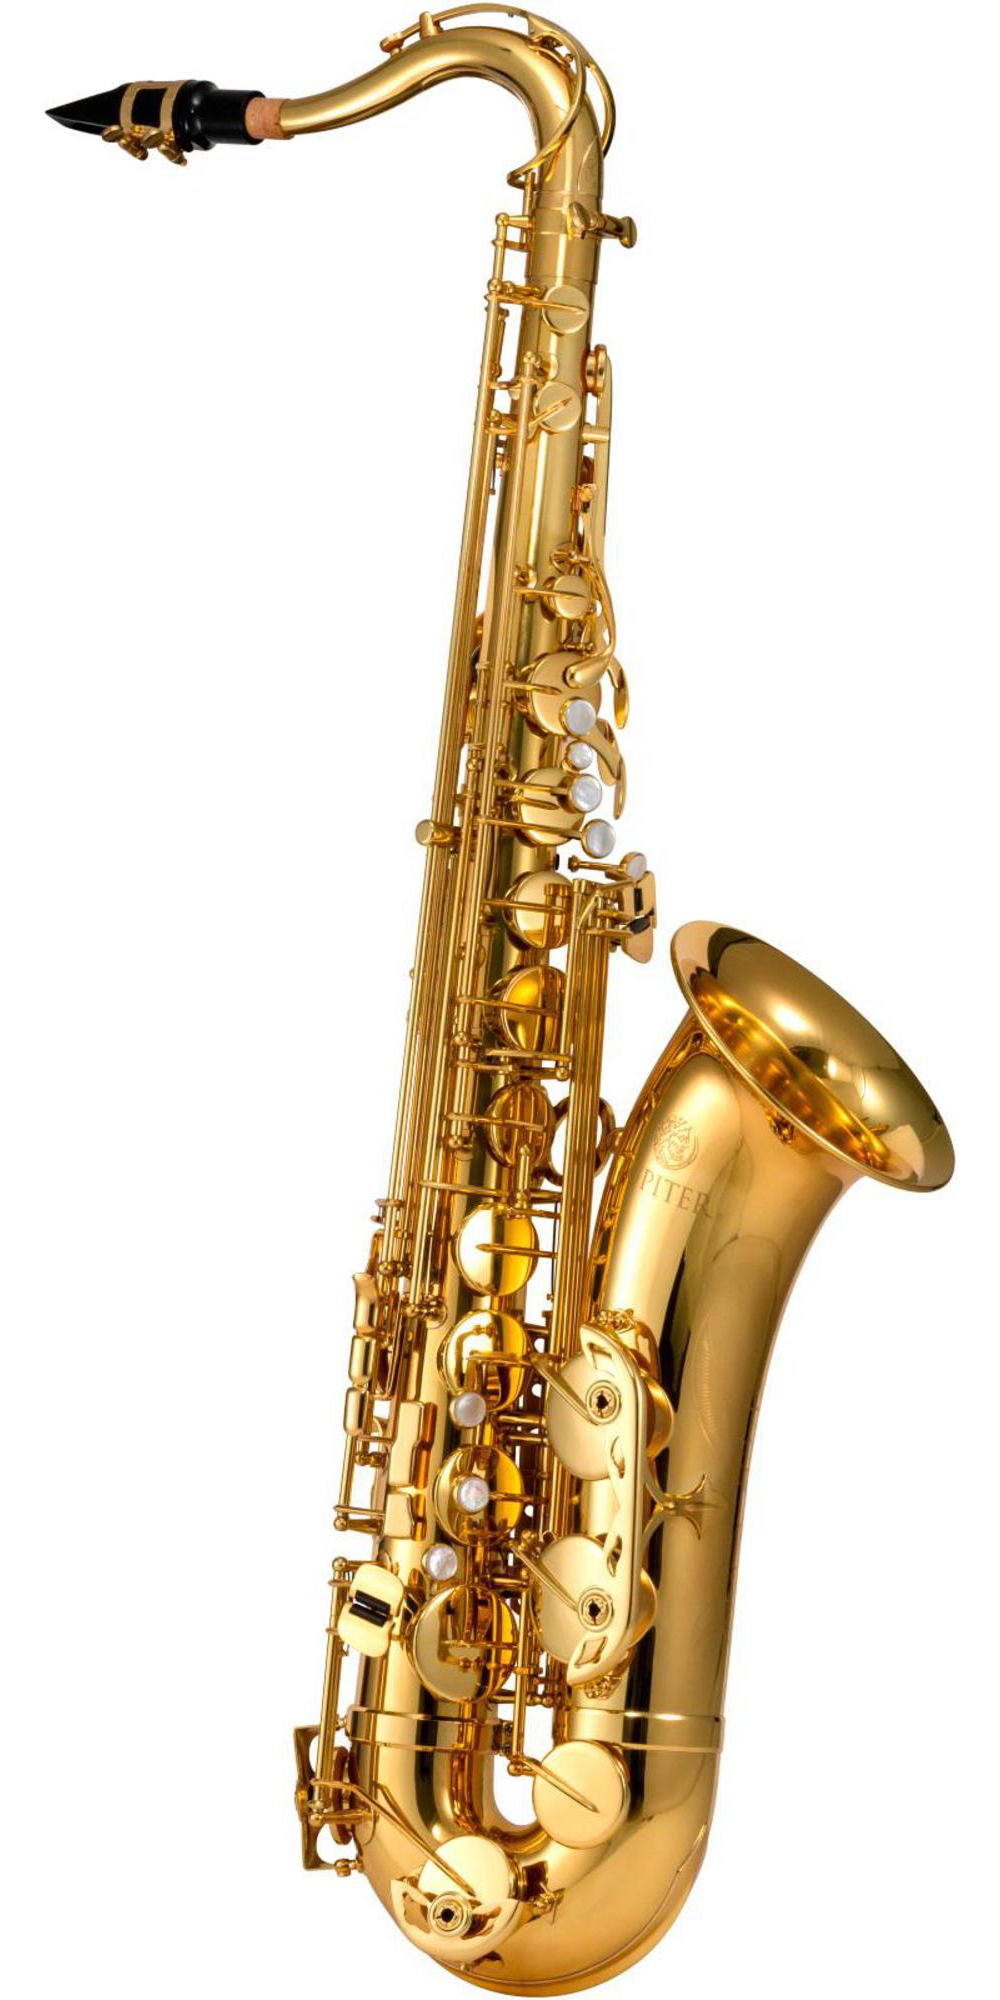 Jupiter JTS1100 Tenor Saxophone Gold Lacquer Gold Lacquer by Jupiter